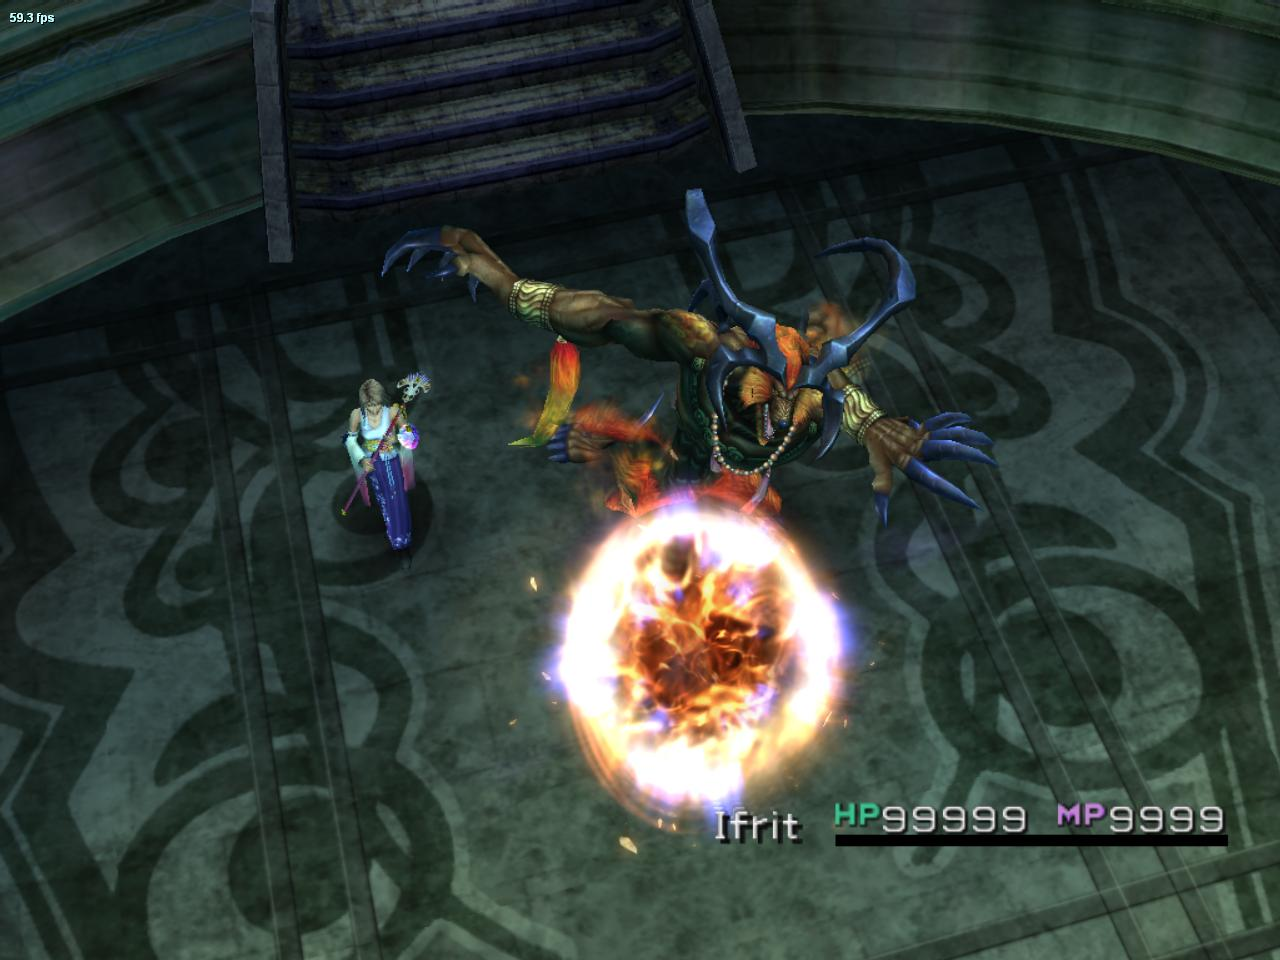 Ifrit - The Final Fantasy Wiki has more Final Fantasy information ...